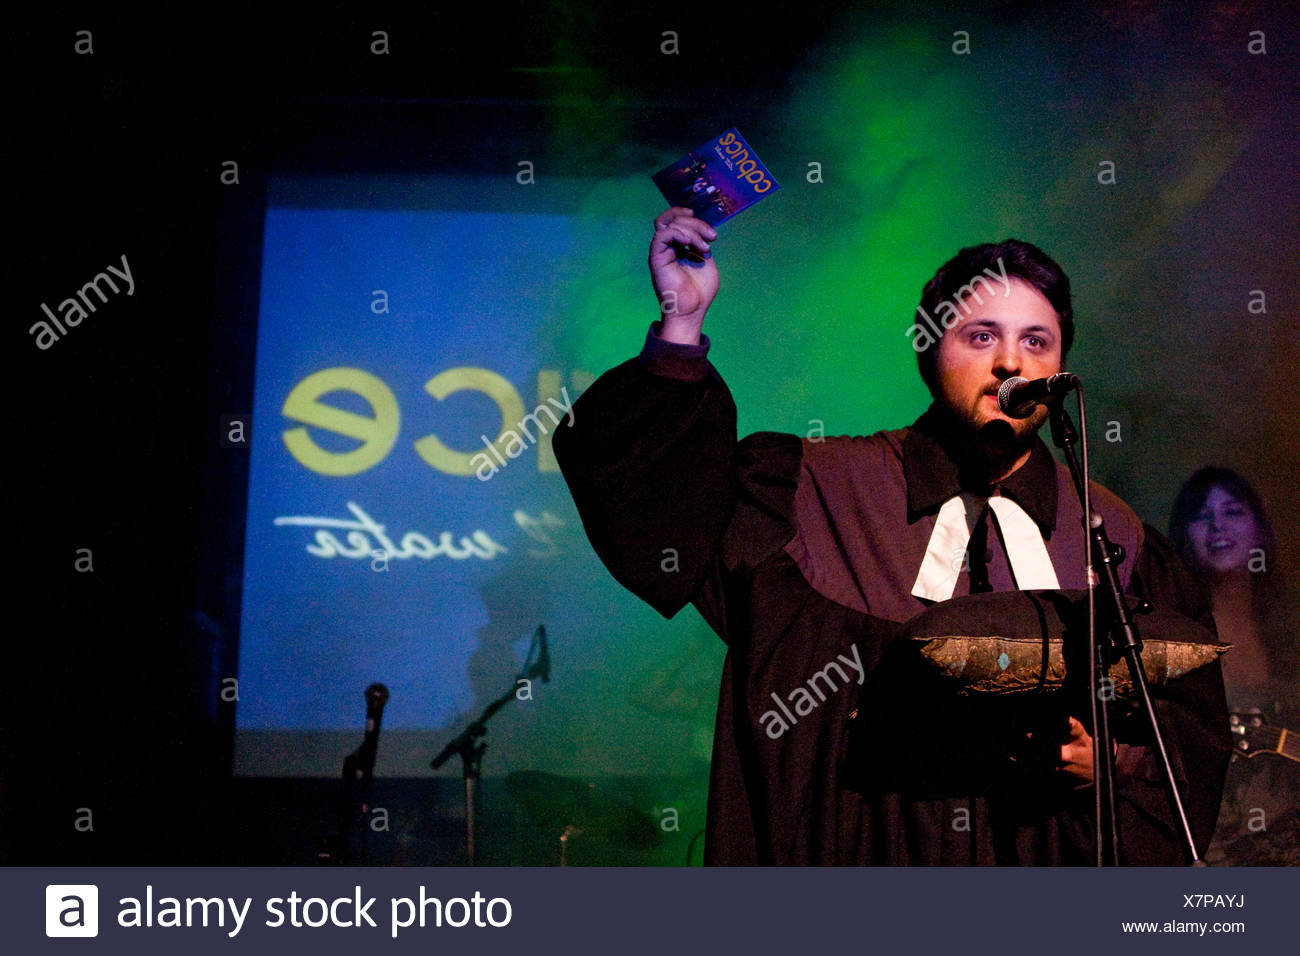 Release of the cd 'Still Water' of the Swiss all-female band Caprice, with divine assistance, live in the Treibhaus Lucerne - Stock Image